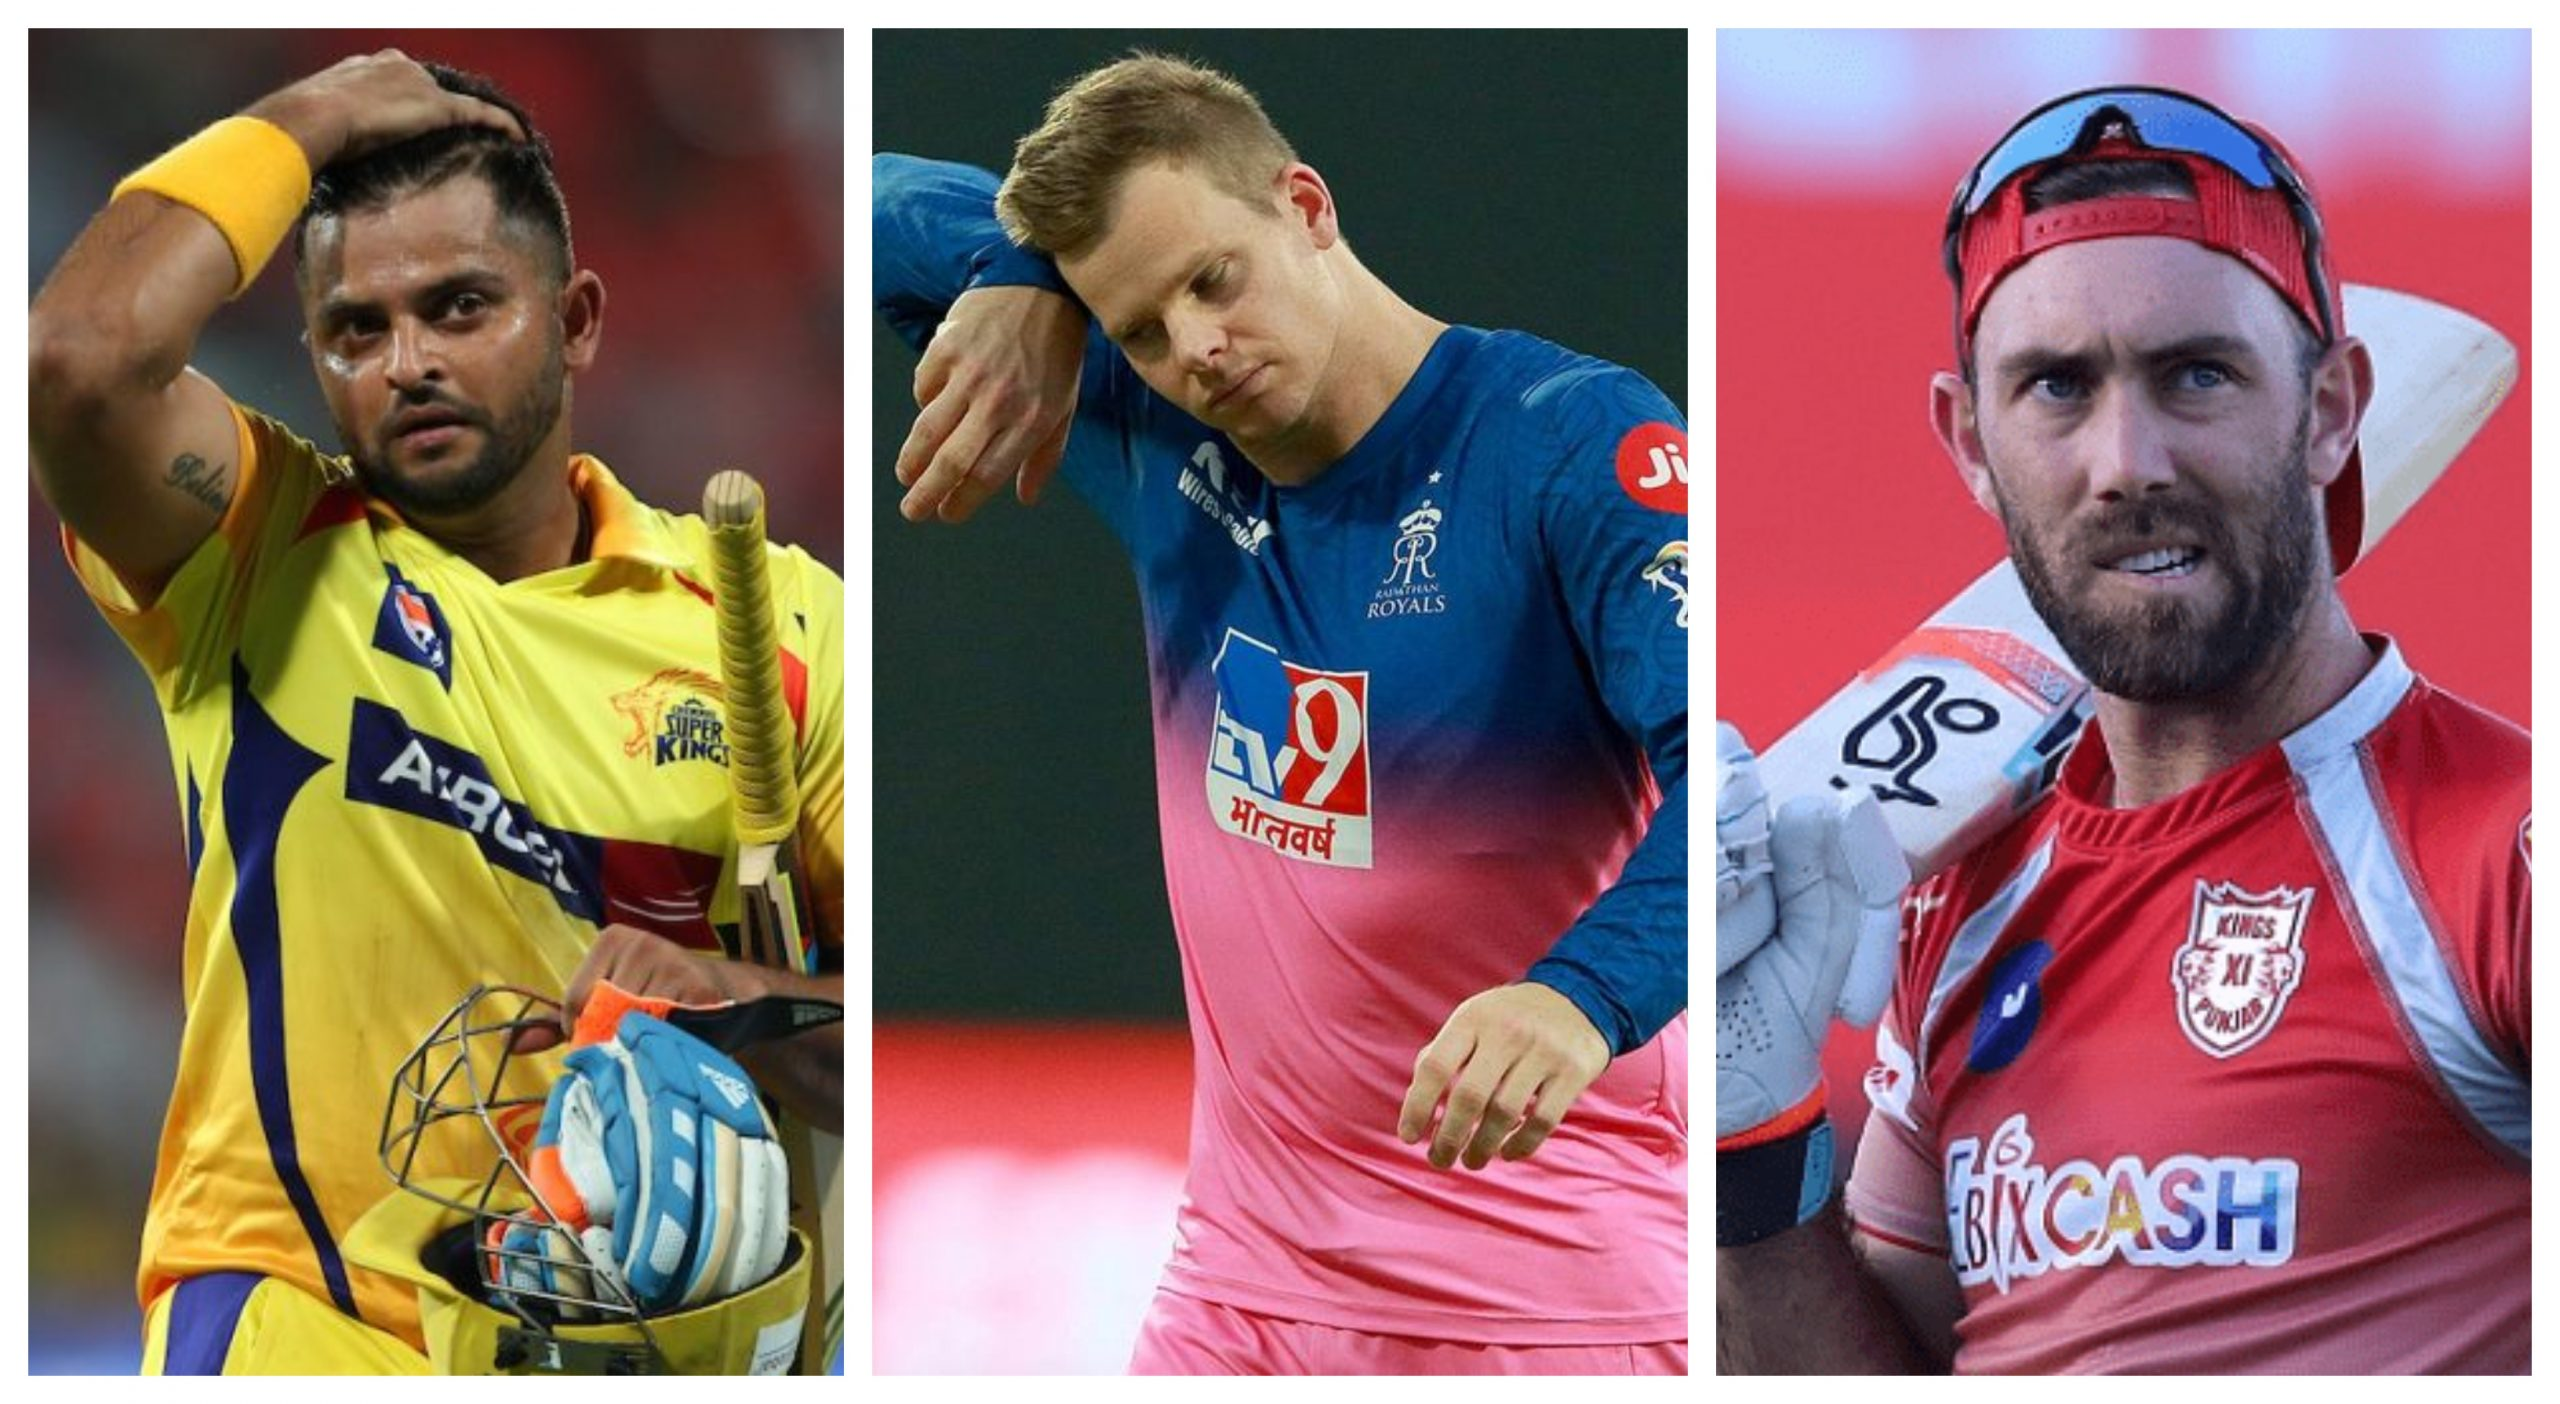 Online betting on ipl 2021 final highlight online football betting sites in nigeria now